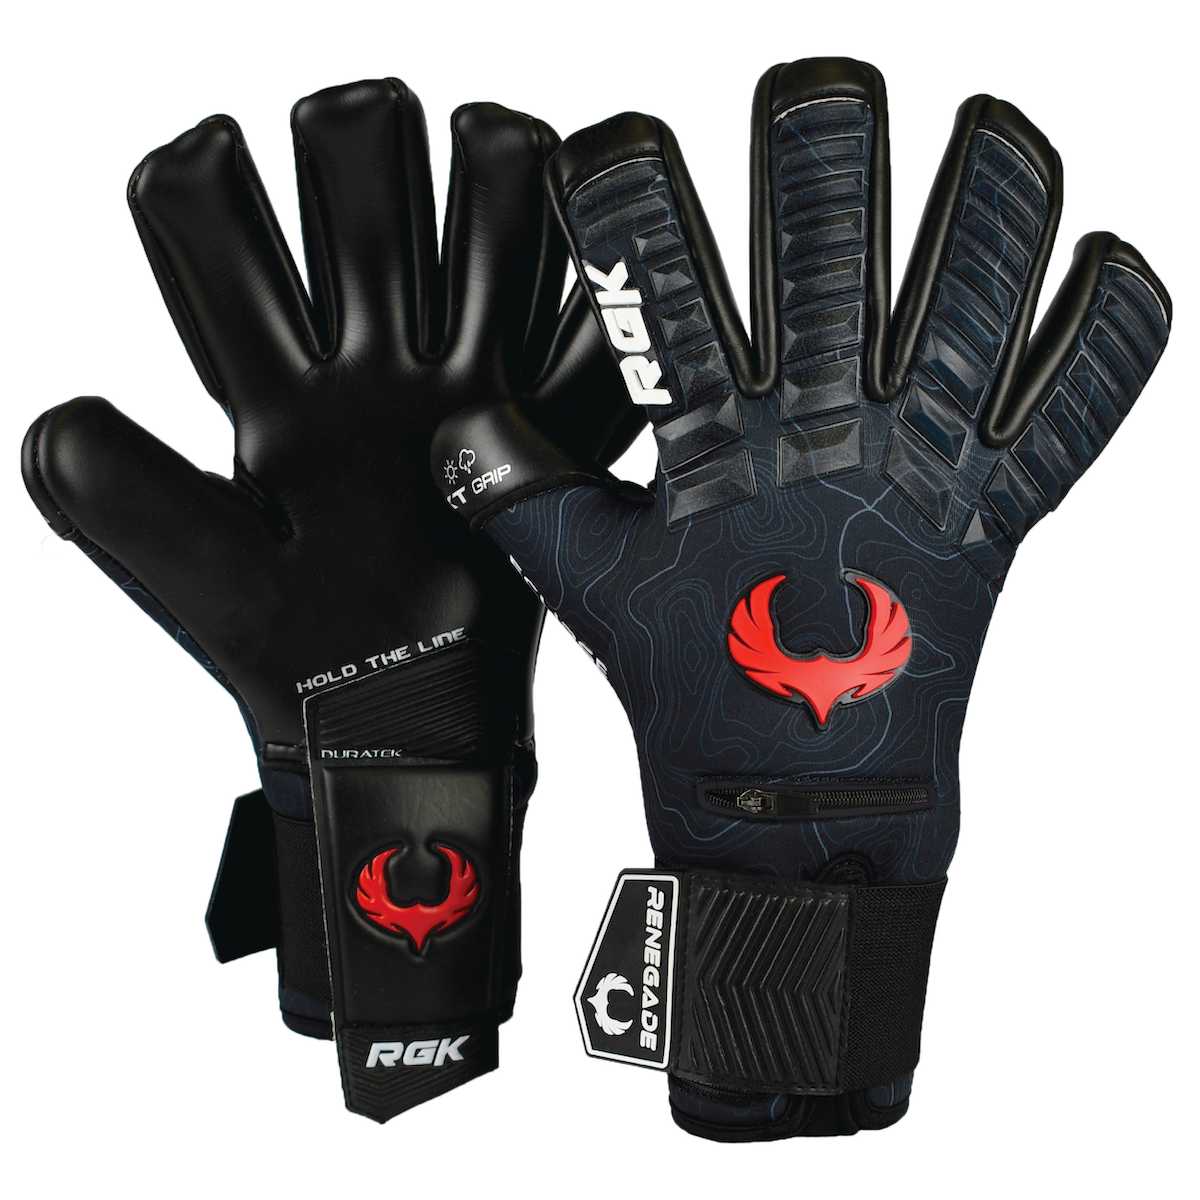 Sizes 6-11, 3 Styles, Level 3 3.5+3mm Hyper Grip /& Super Mesh Based in The USA Renegade GK Vortex Goalie Gloves with Microbe-Guard Excellent All-Around Goalkeeper Glove